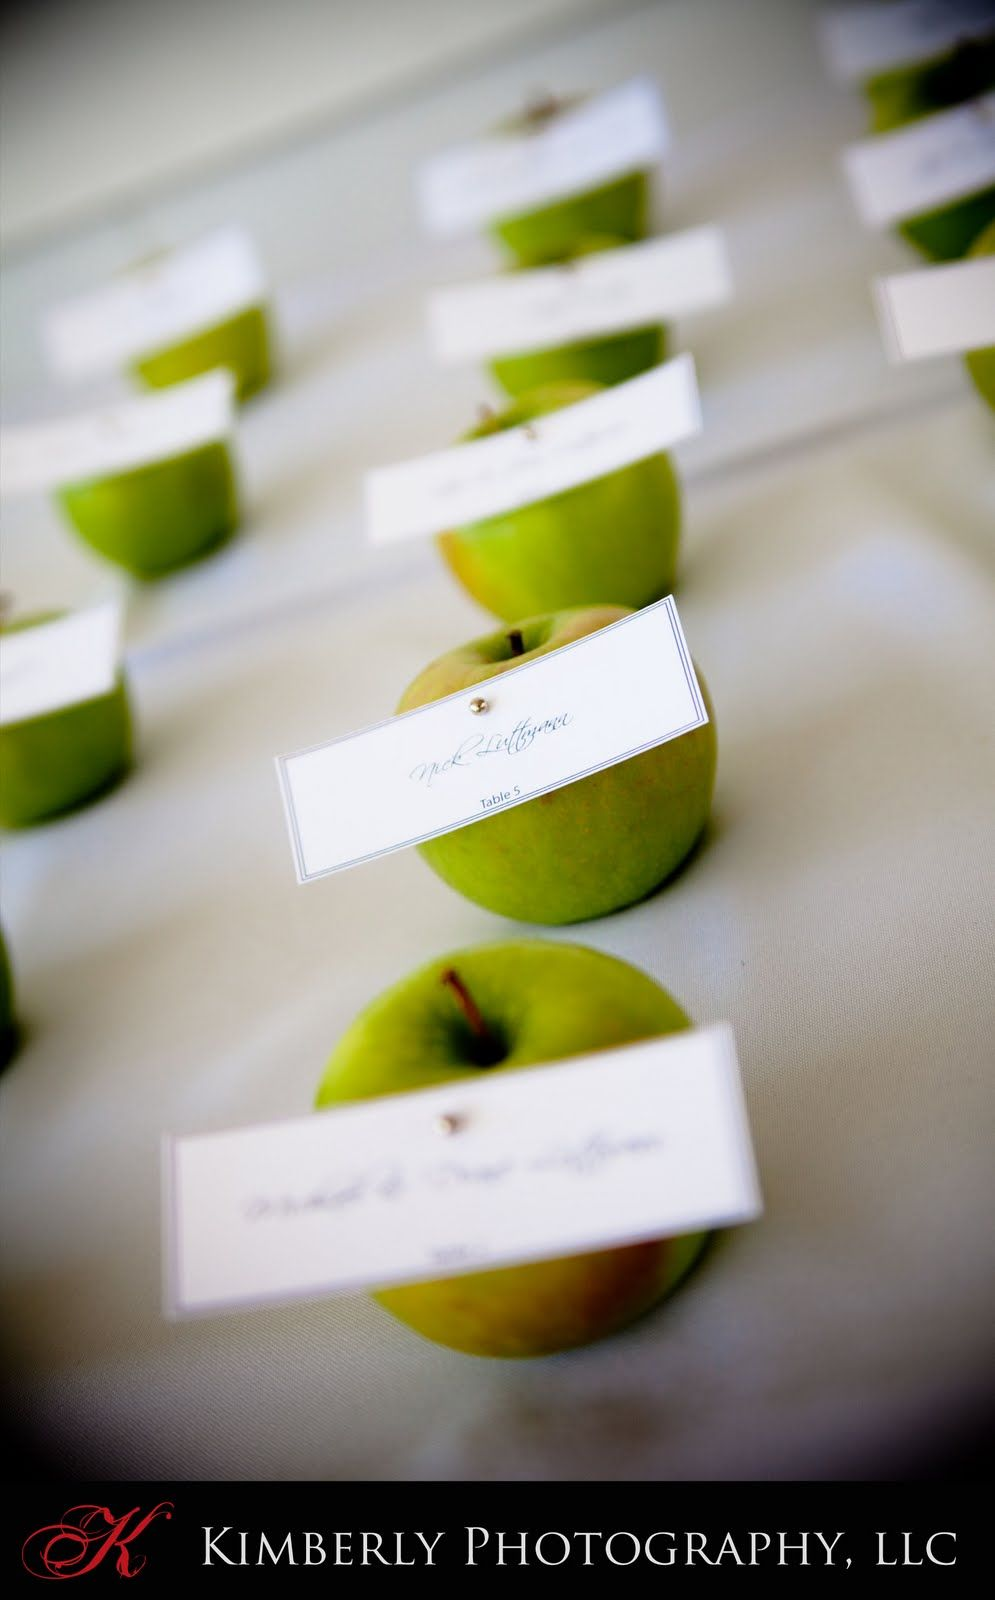 apple place cards also healthy edible wedding favors | Green Wedding ...